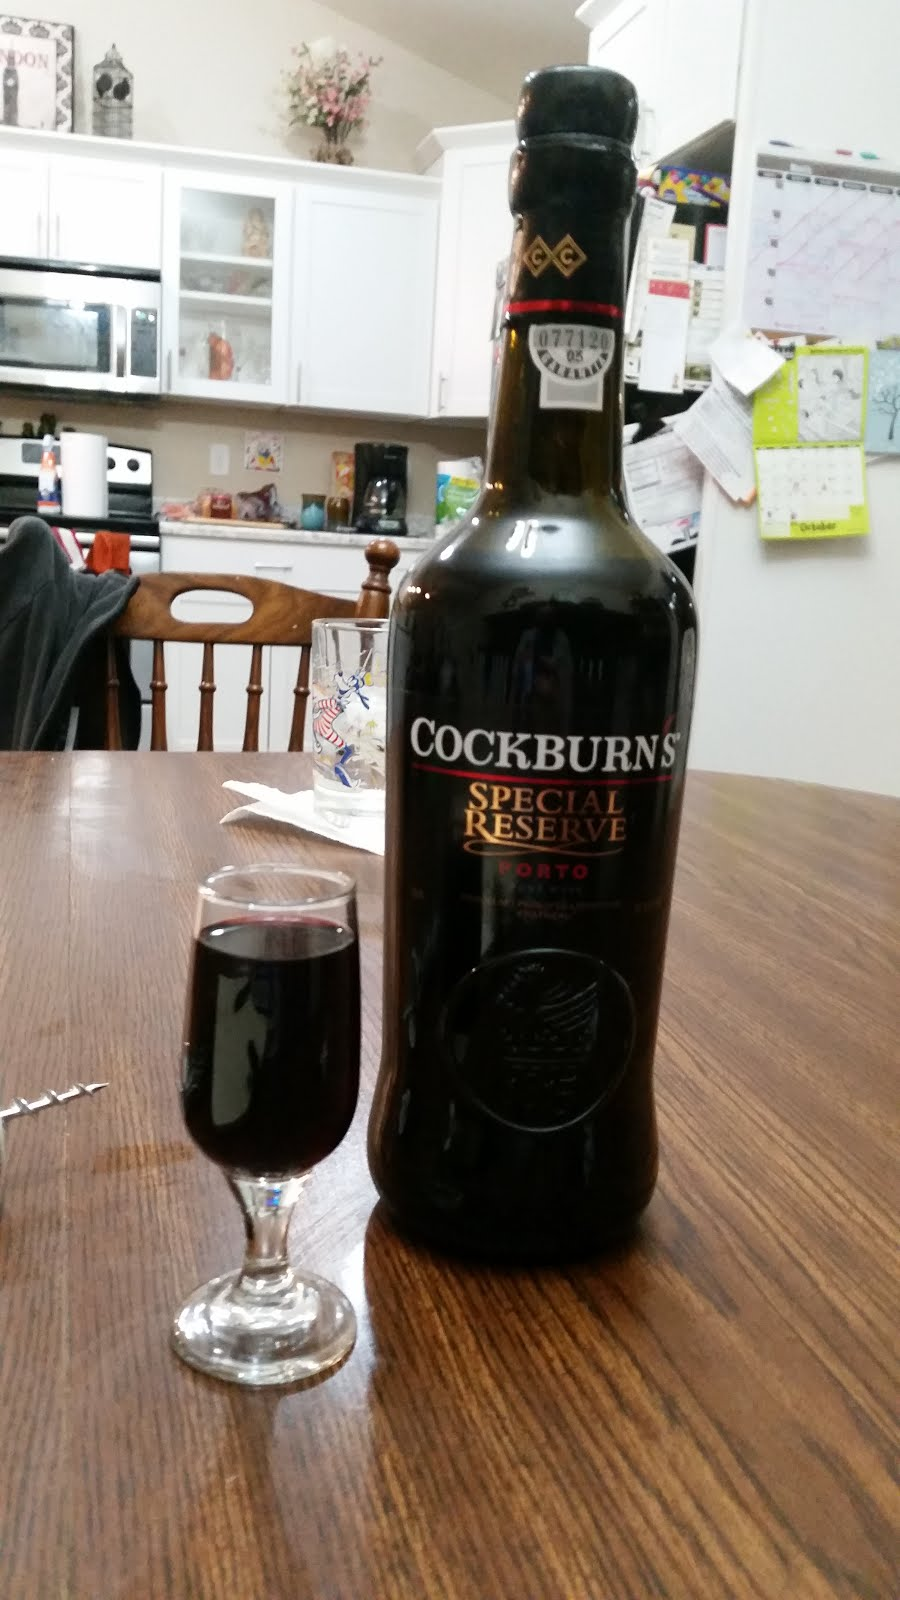 Boozehound Unfiltered: With A Name Like Cockburns, It's